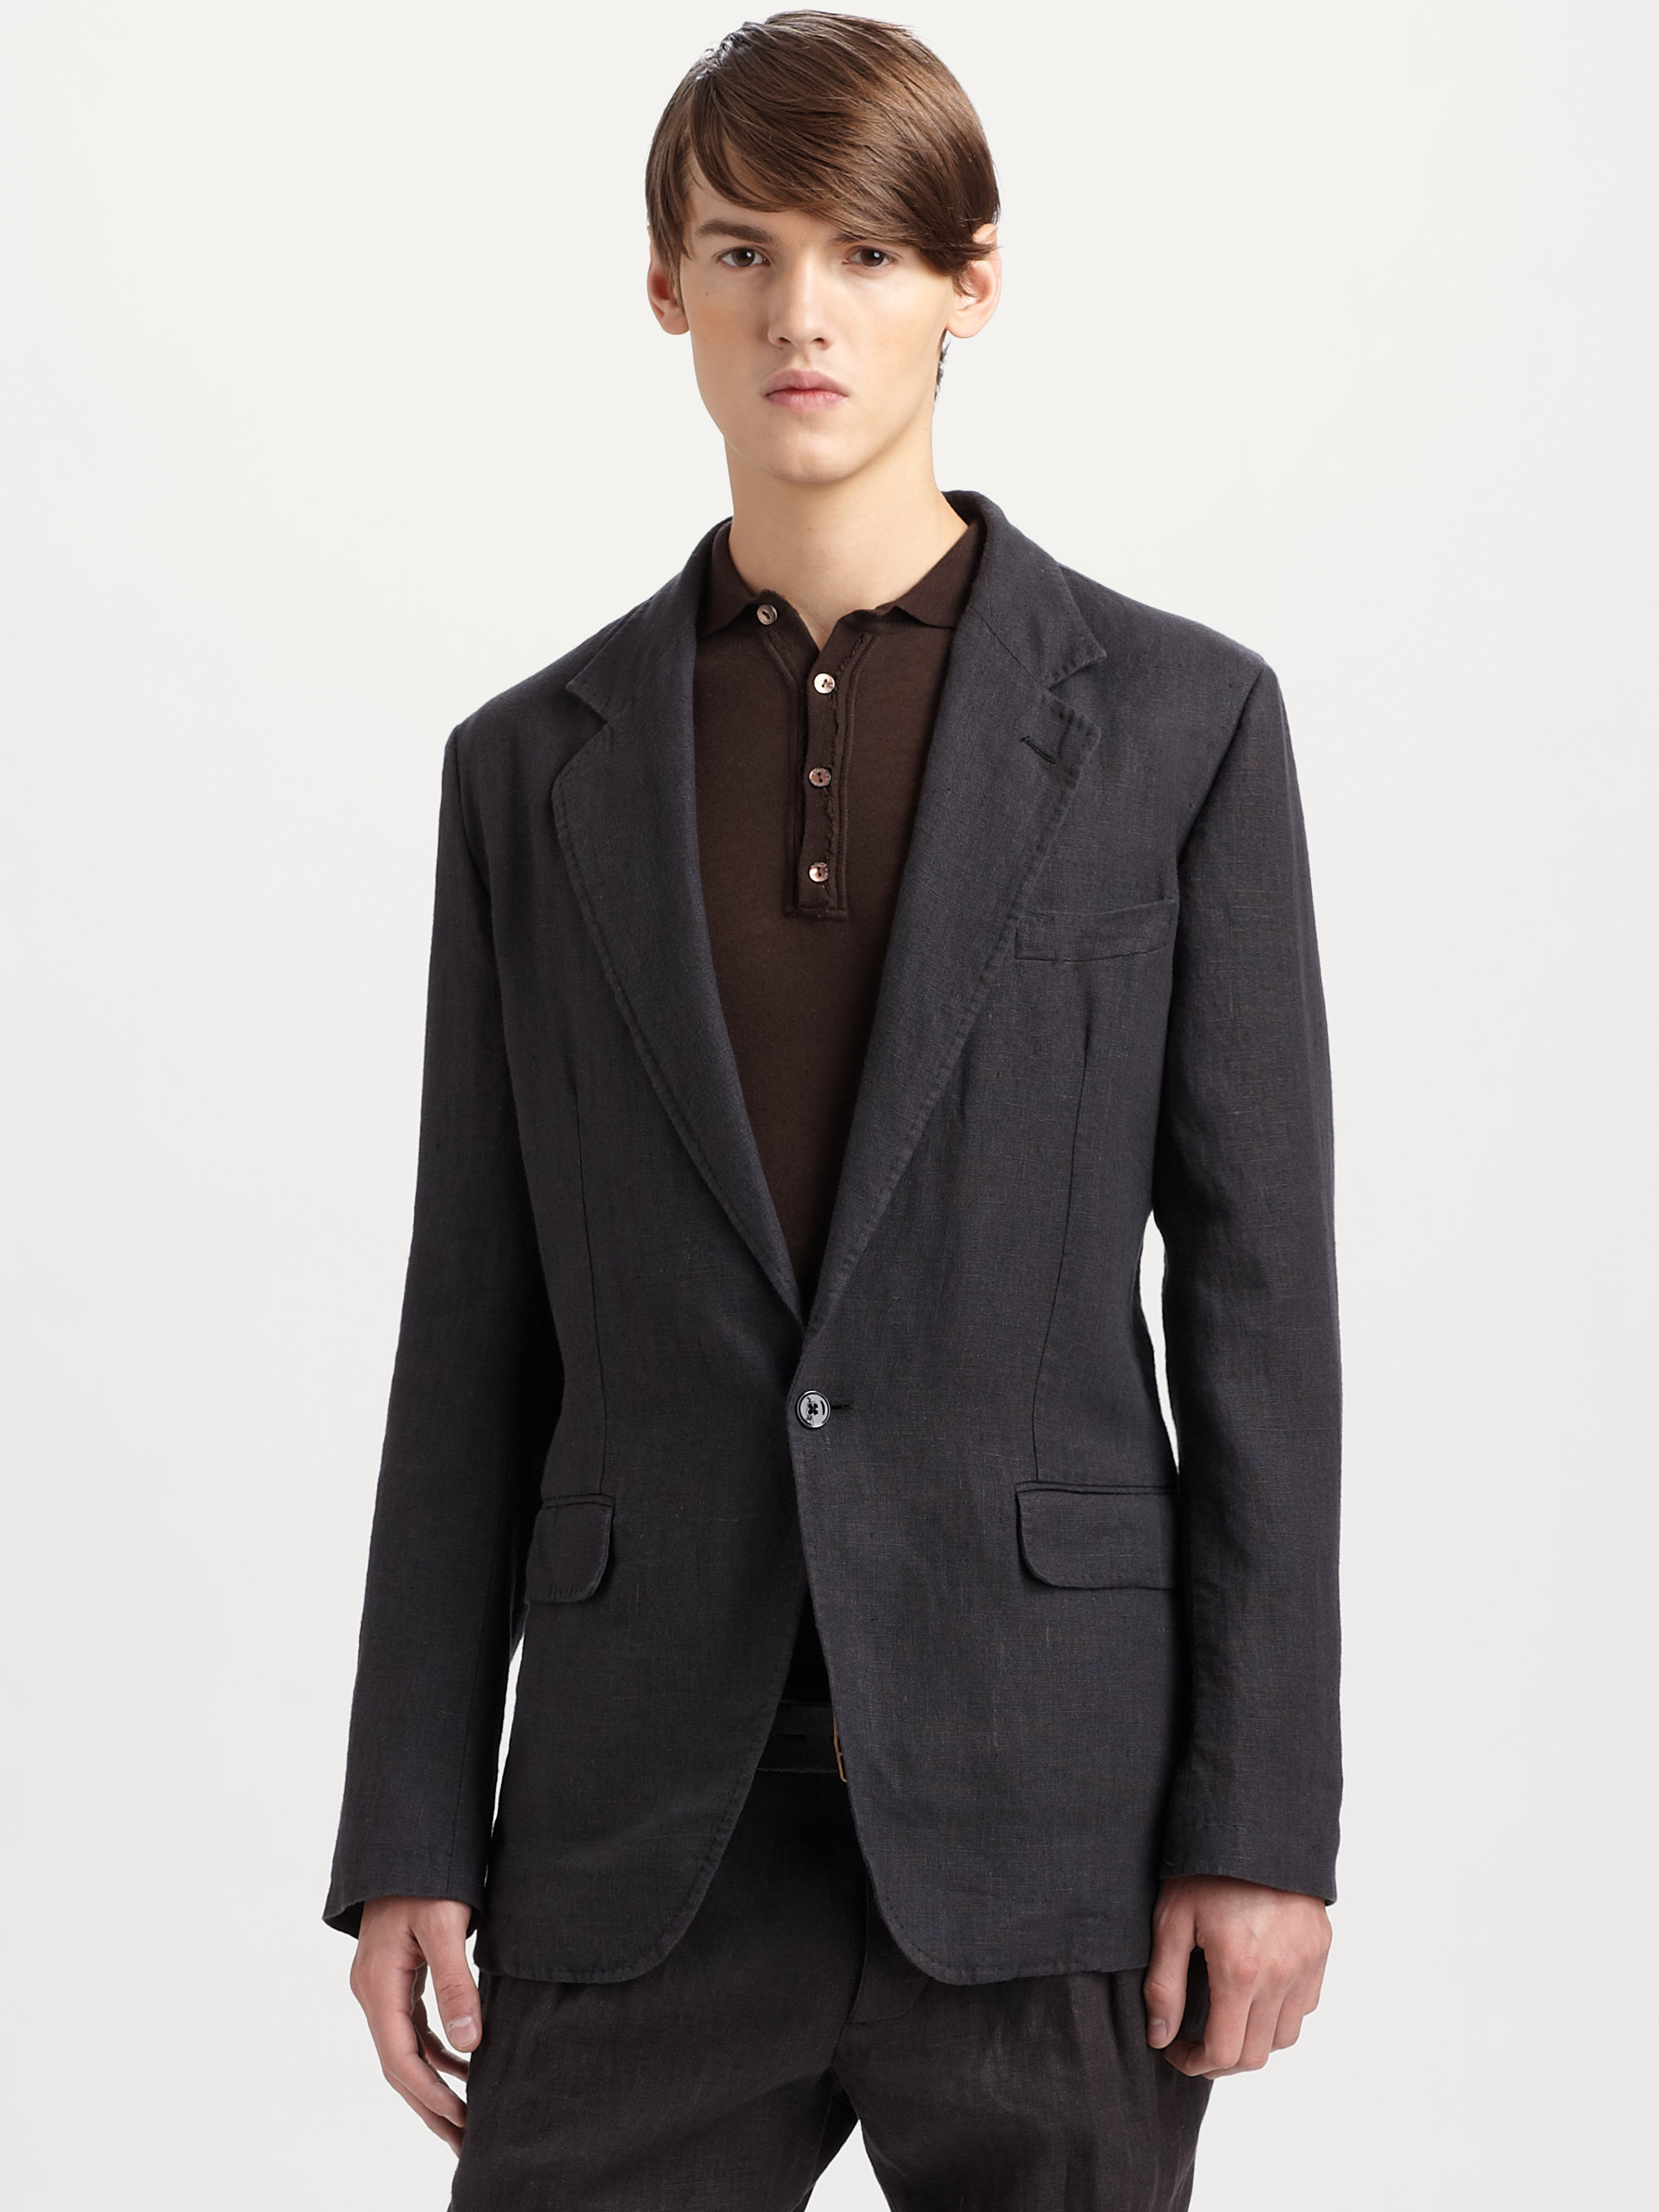 Dolce & gabbana Linen Blazer in Black for Men | Lyst